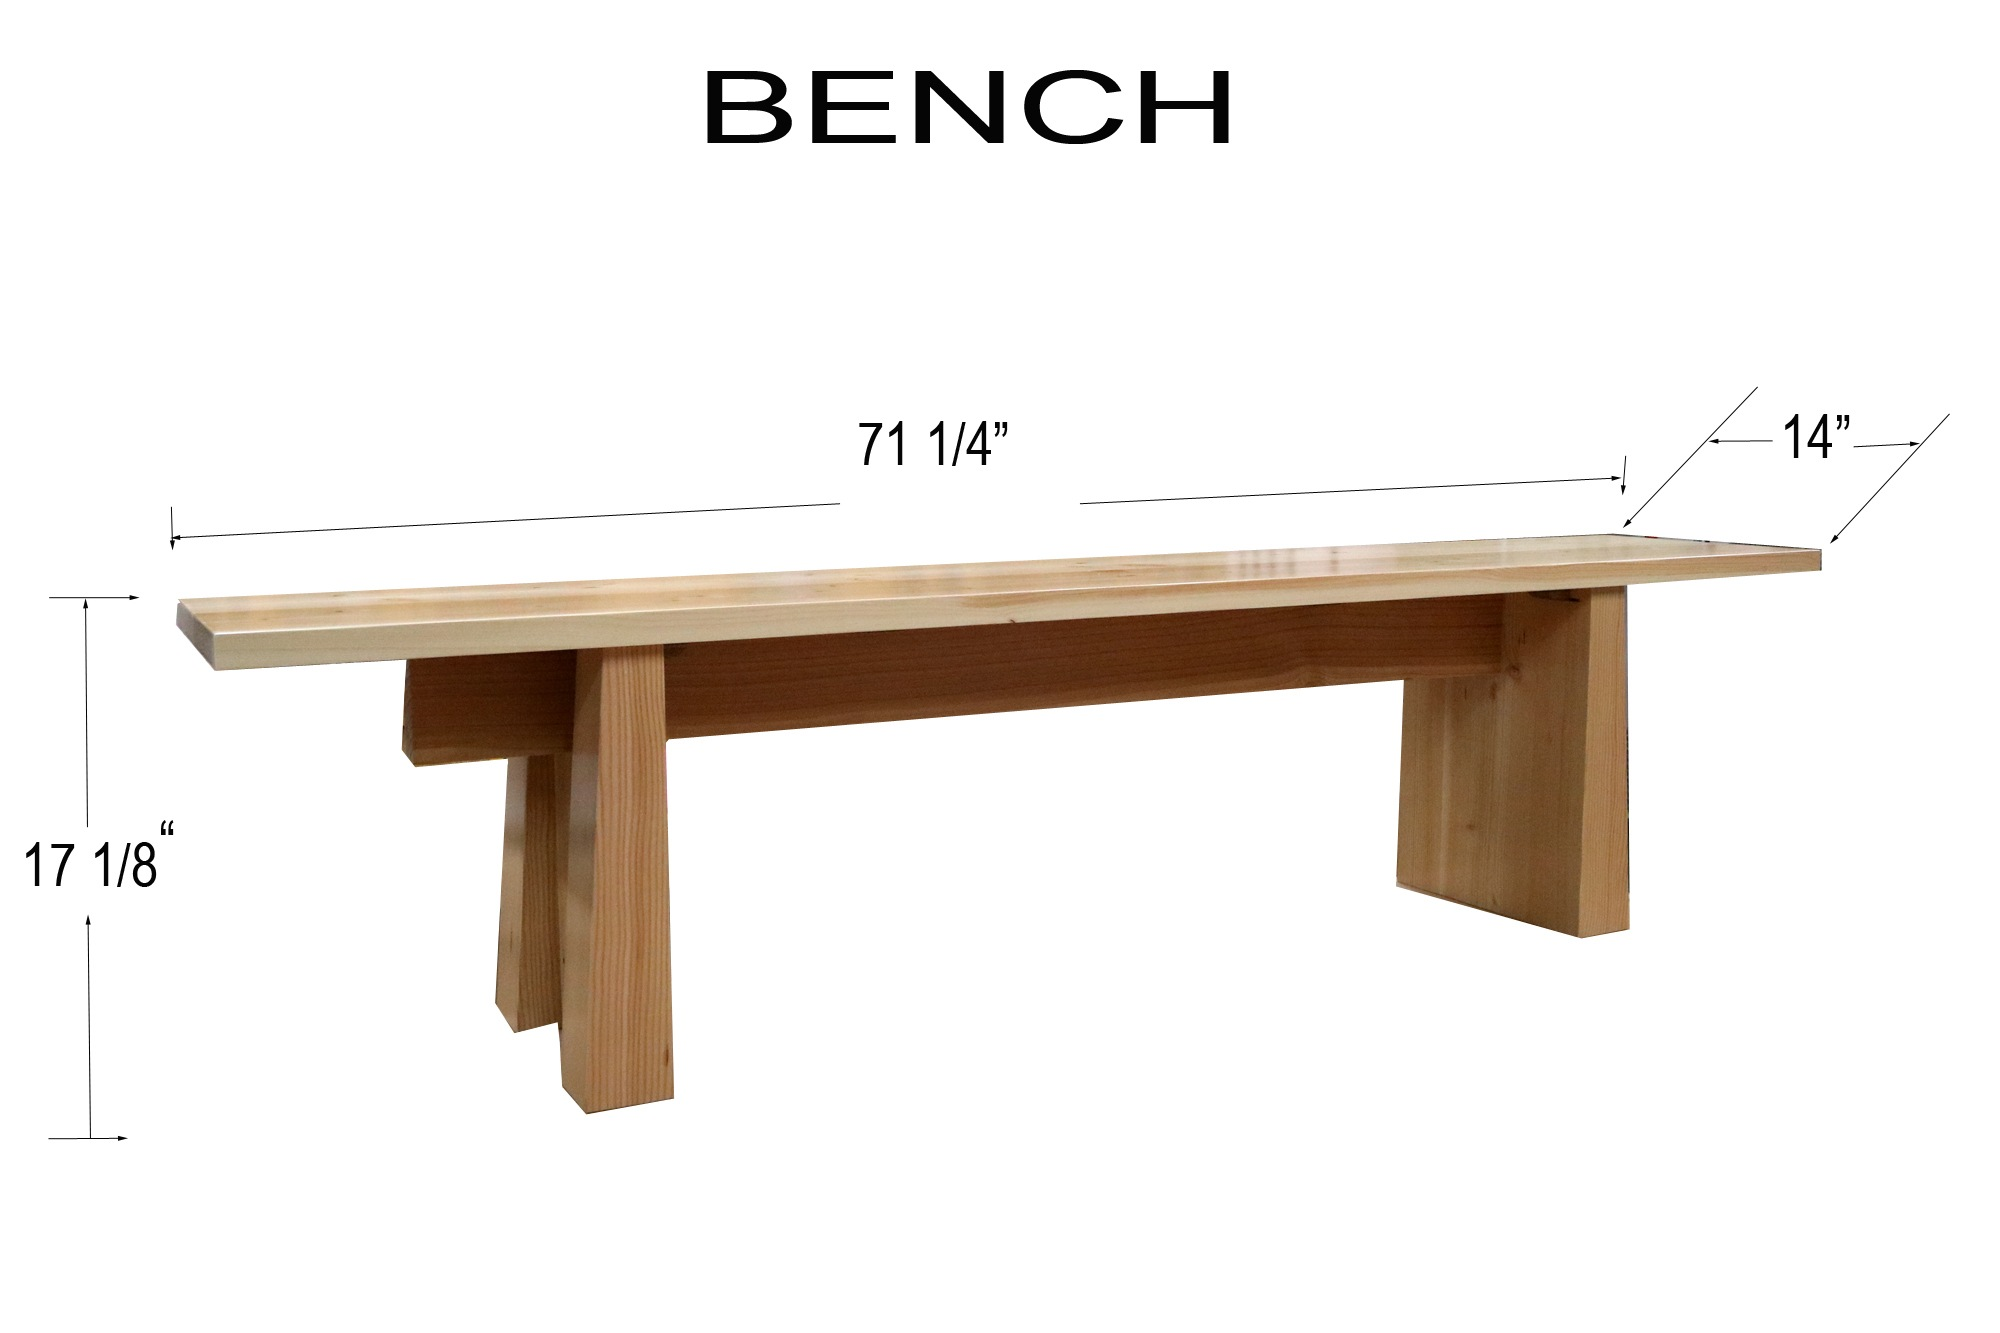 Build a Modern Bench – Free Design Plans